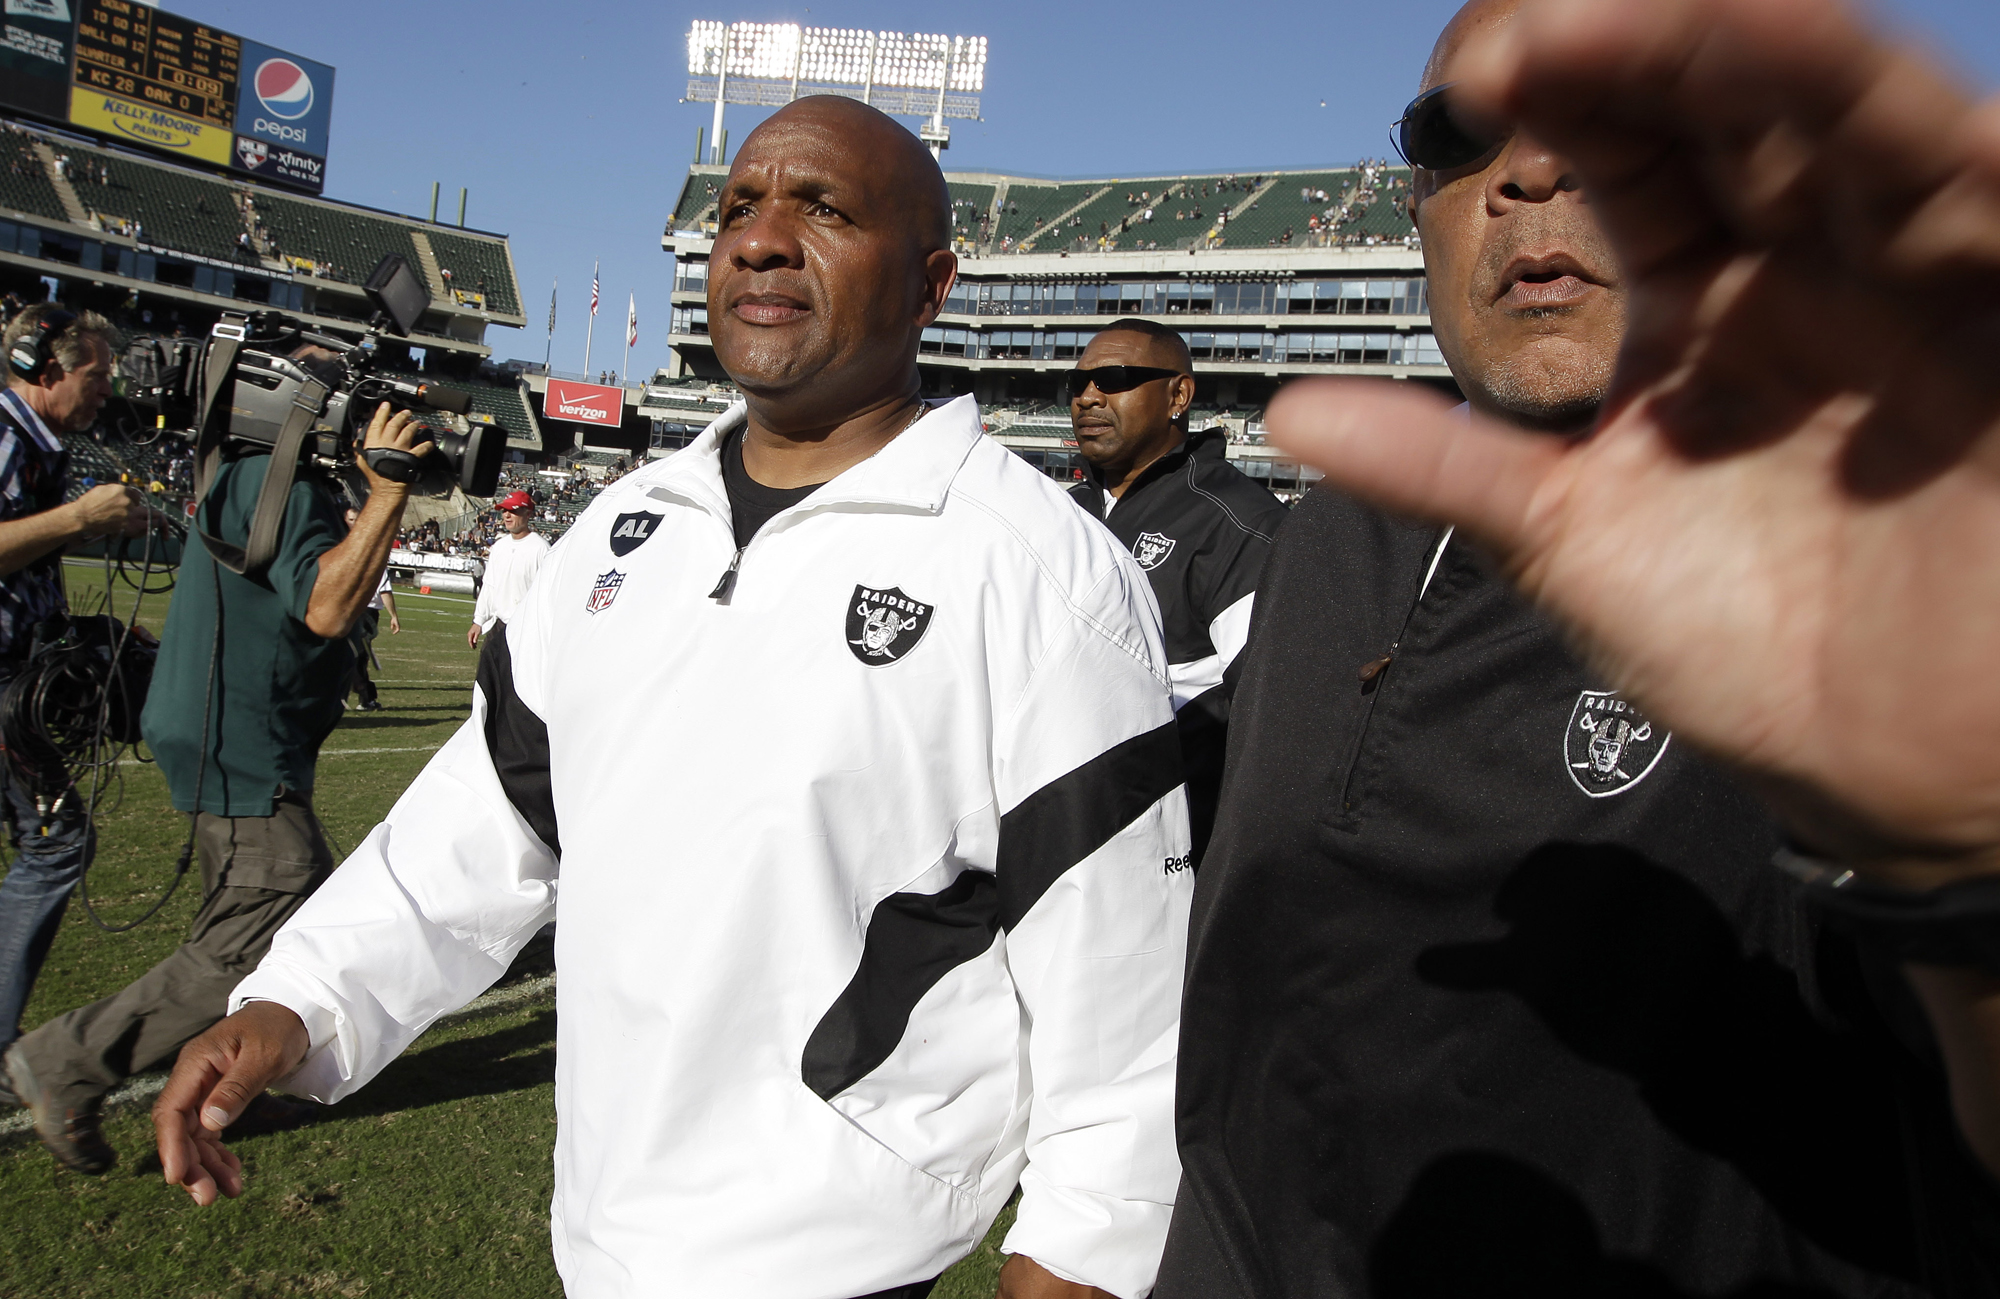 Oakland Raiders head coach Hue Jackson, left, walks off the field after an NFL football game against the Kansas City Chiefs in Oakland, Calif., Sunday, Oct. 23, 2011.